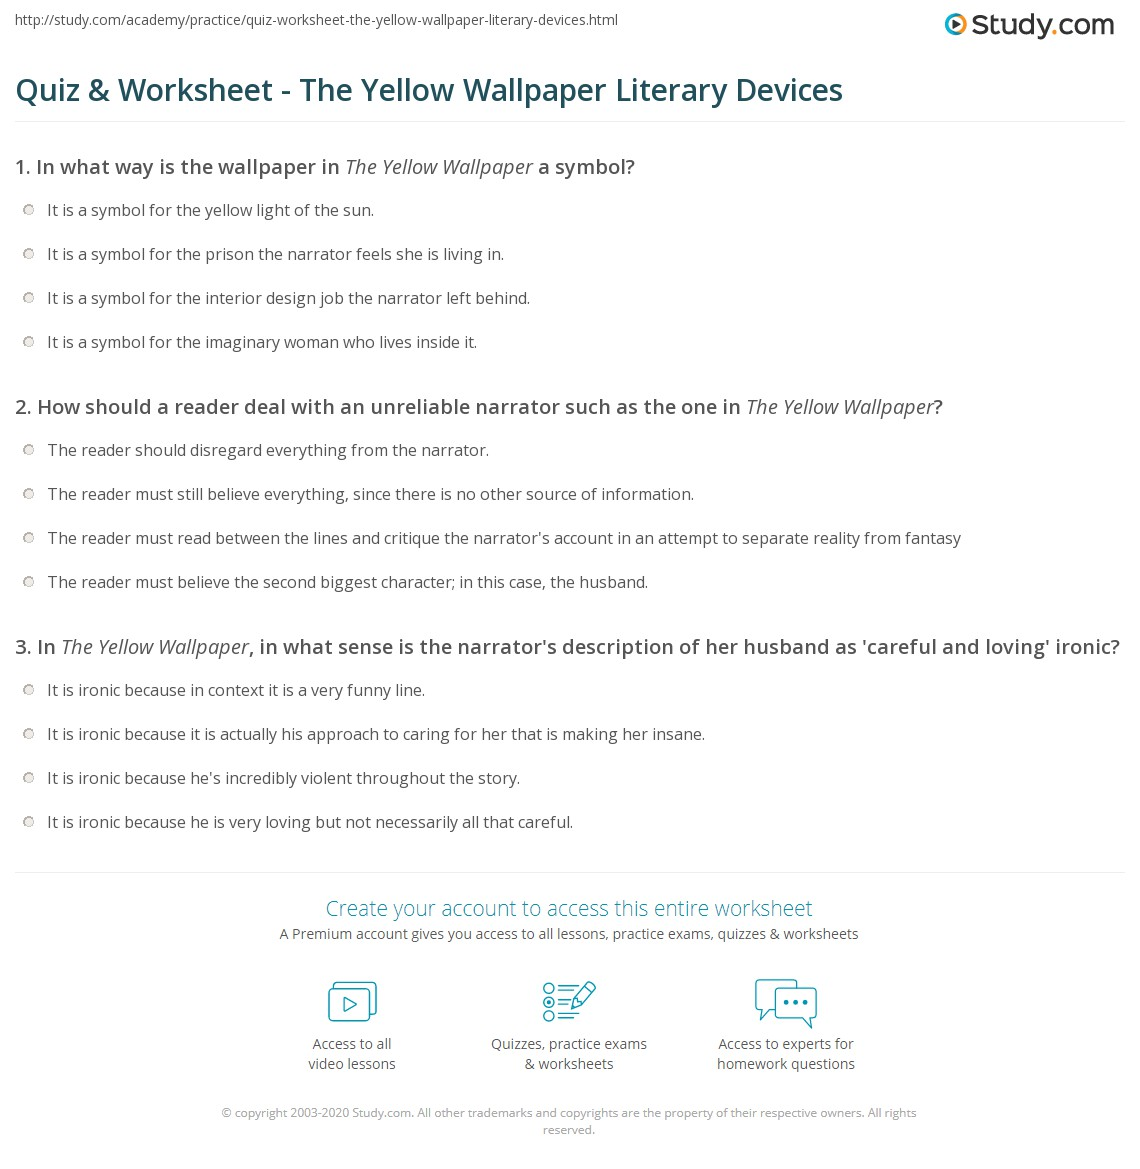 Quiz Worksheet The Yellow Wallpaper Literary Devices Study